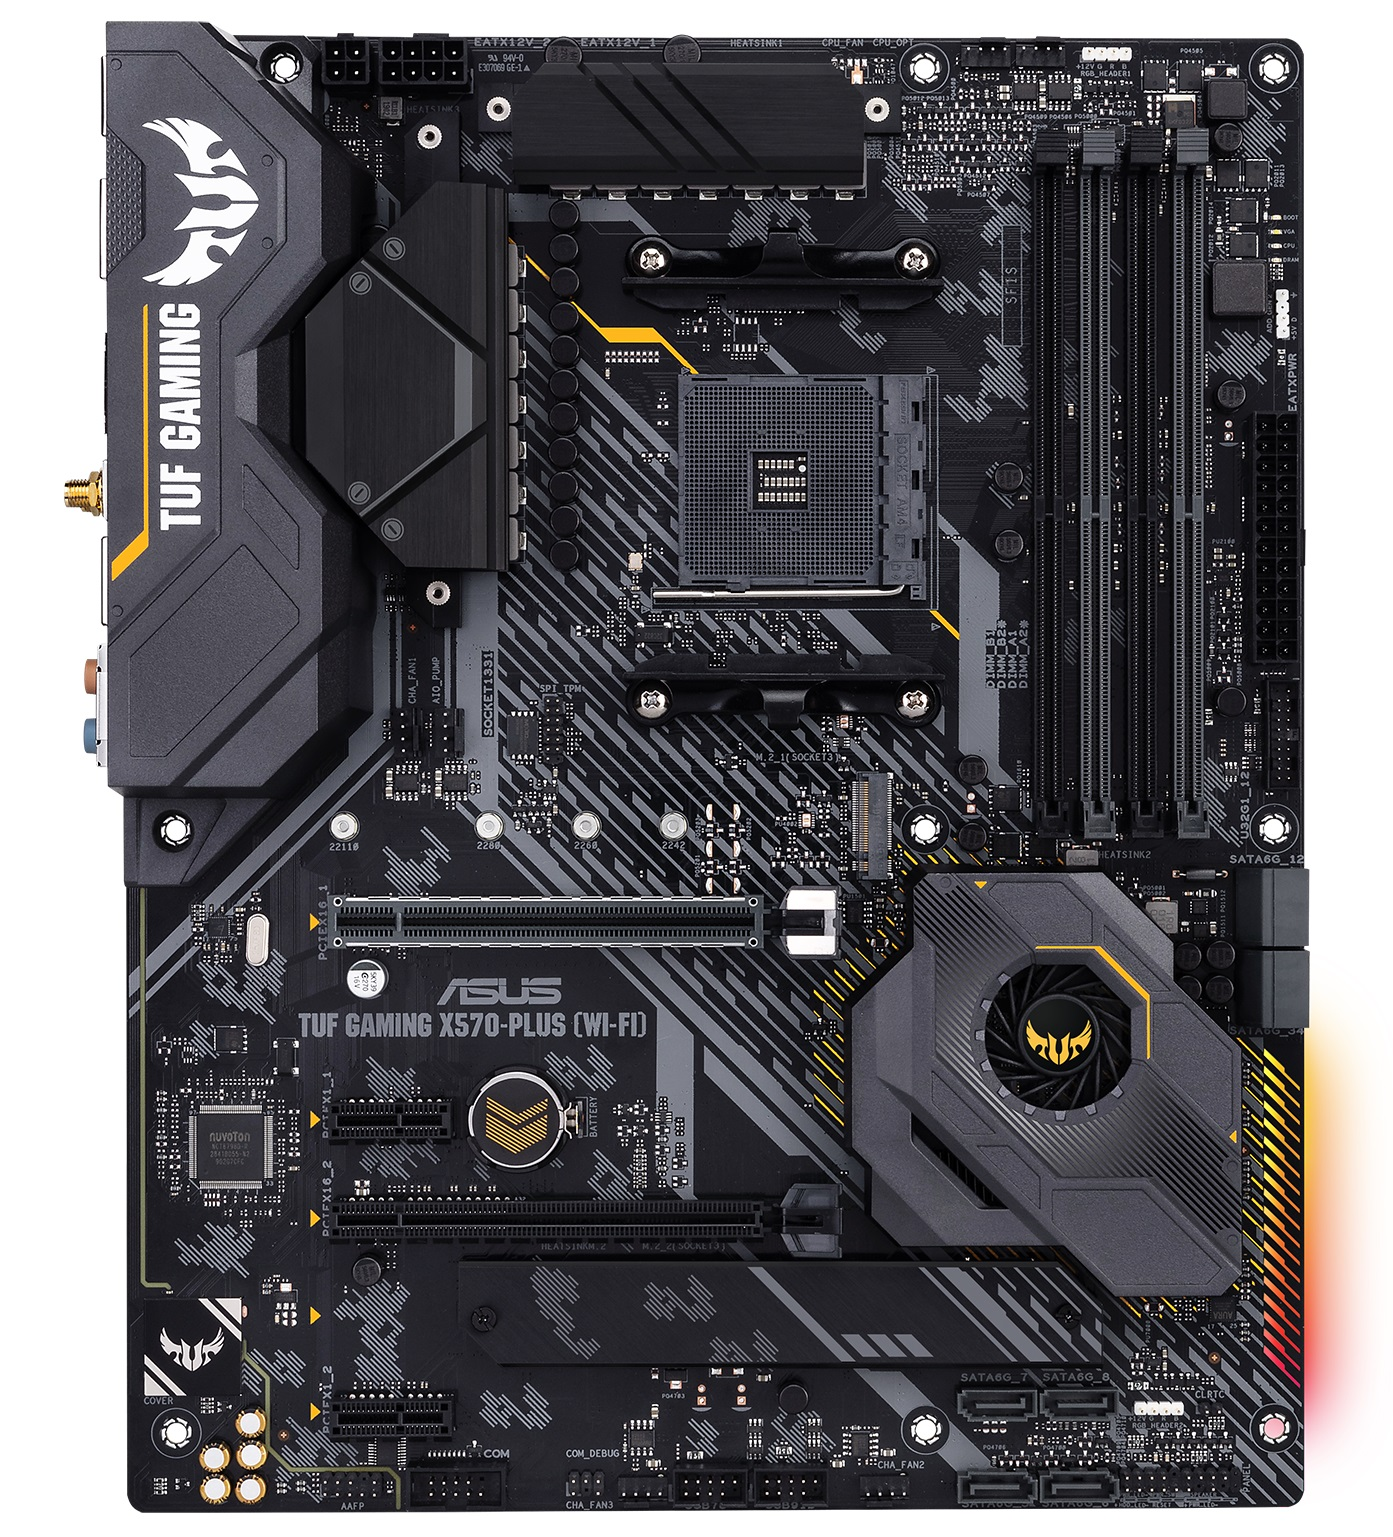 ASUS TUF Gaming X570-Plus & X570-Plus WIFI - The AMD X570